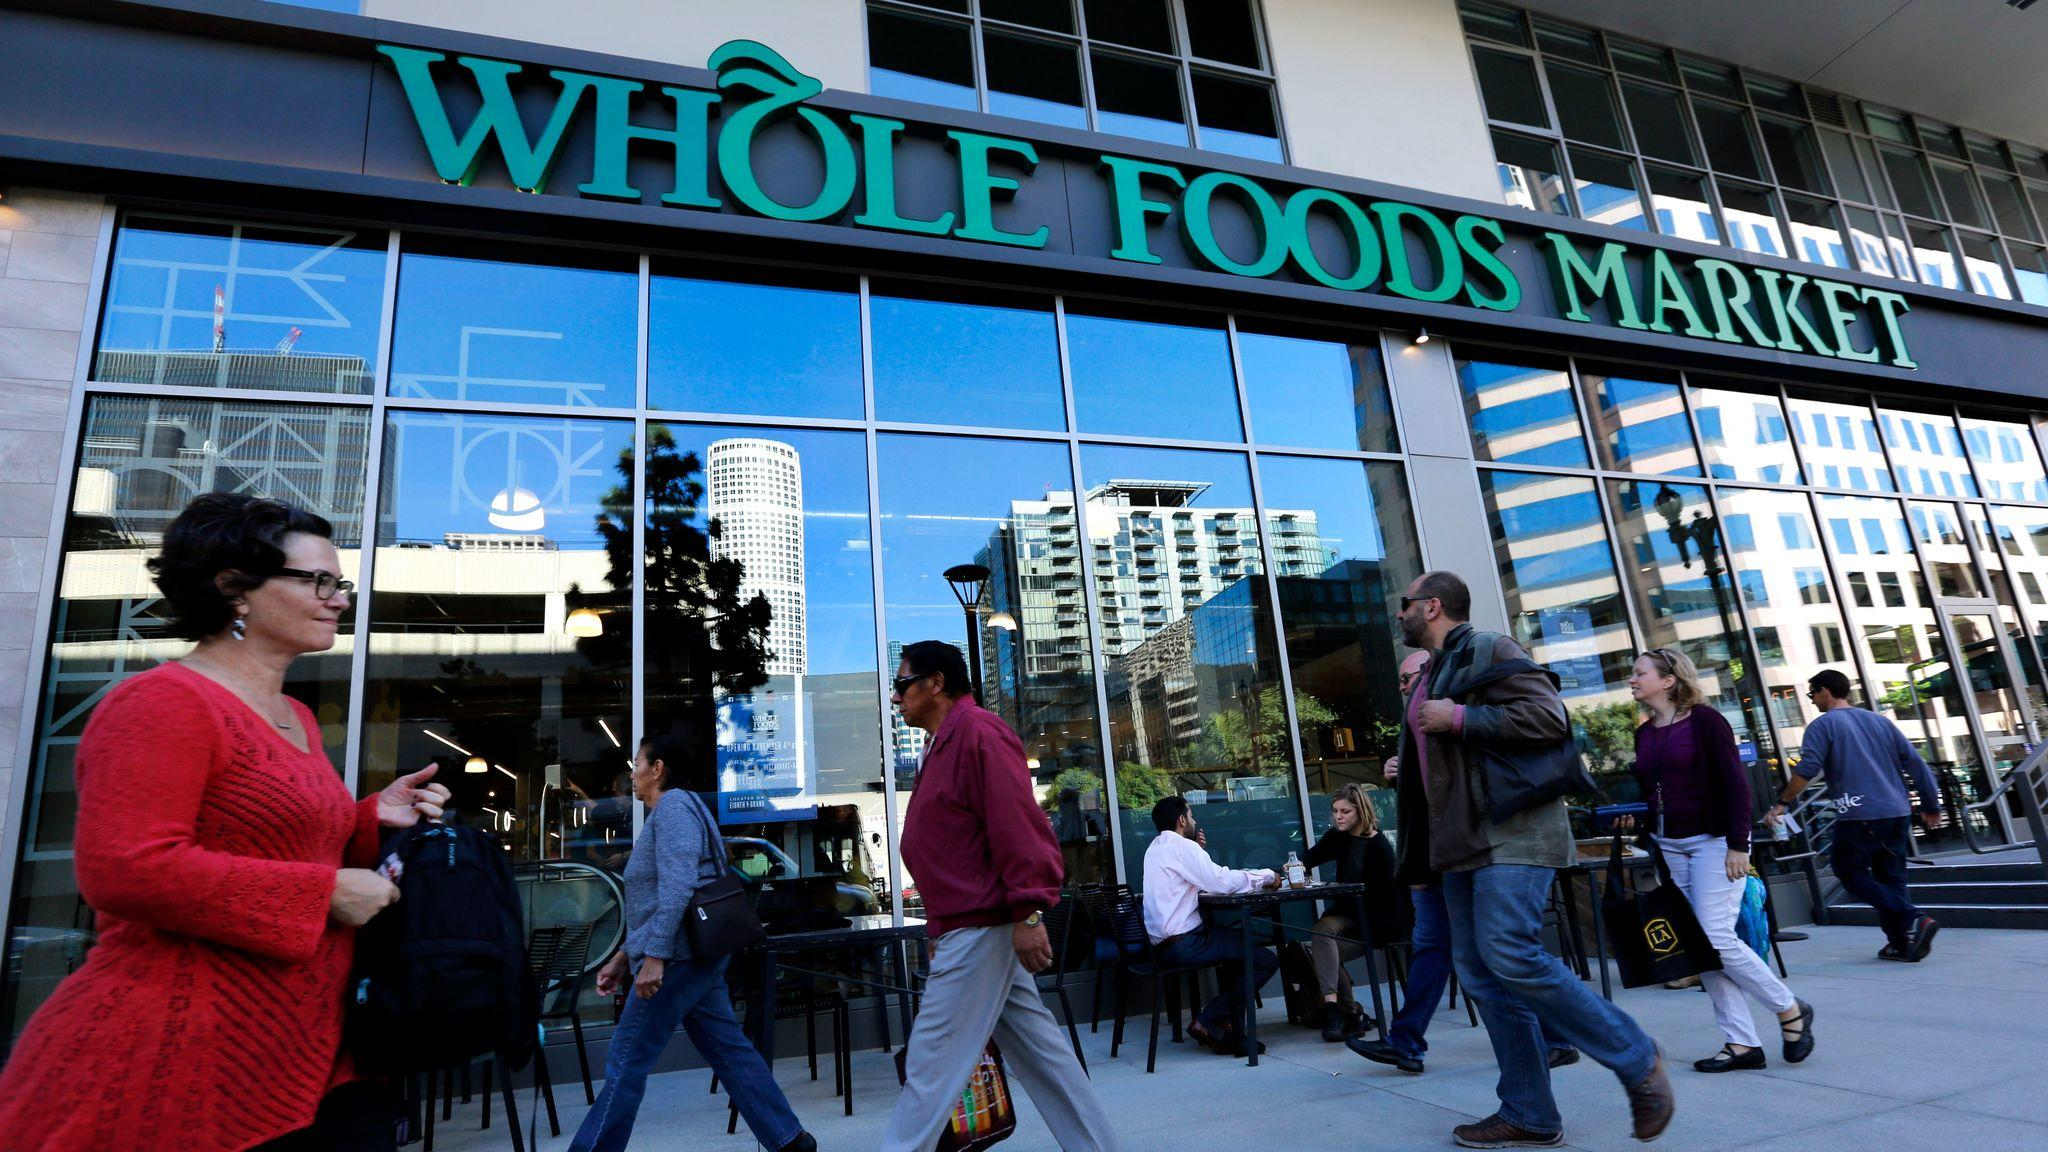 Pedestrians make their approach past a Whole Foods Market on Grand Avenue in downtown Los Angeles during a store's grand opening on Dec 4, 2015.